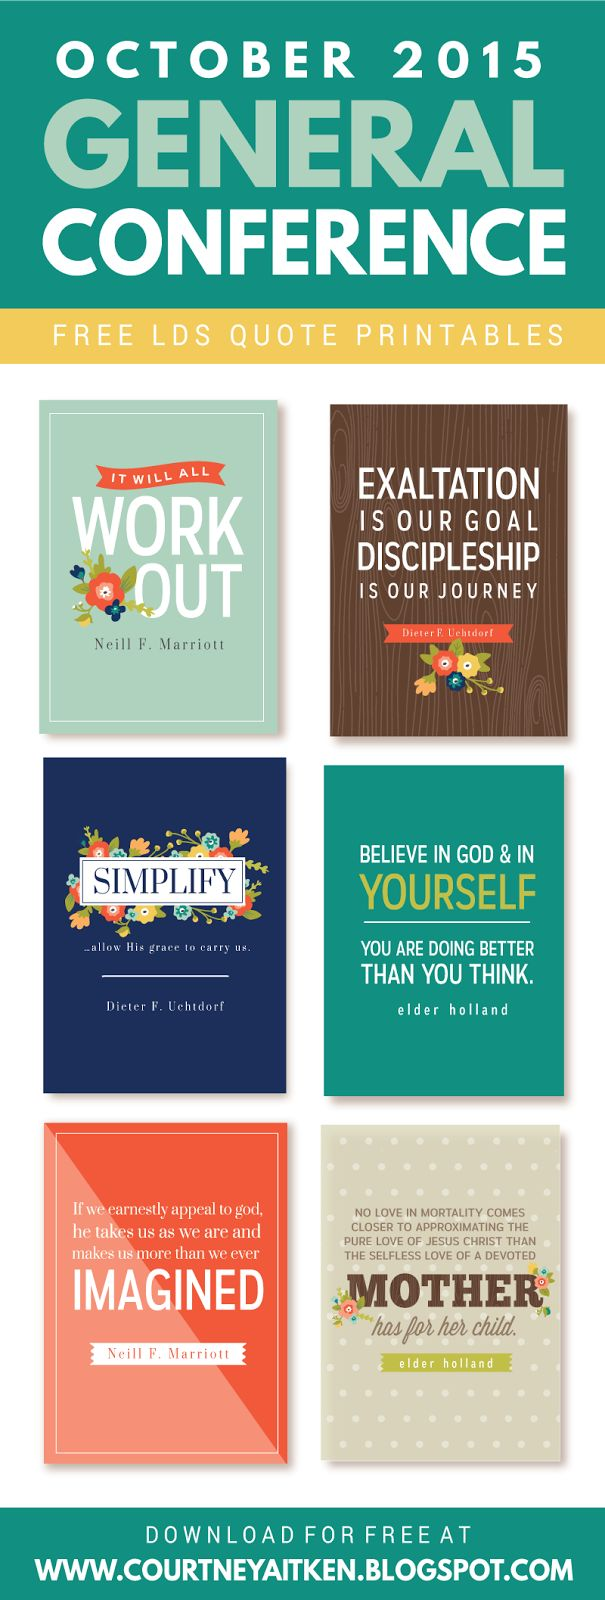 All Things Bright and Beautiful: 2016 General Conference FREE Printables